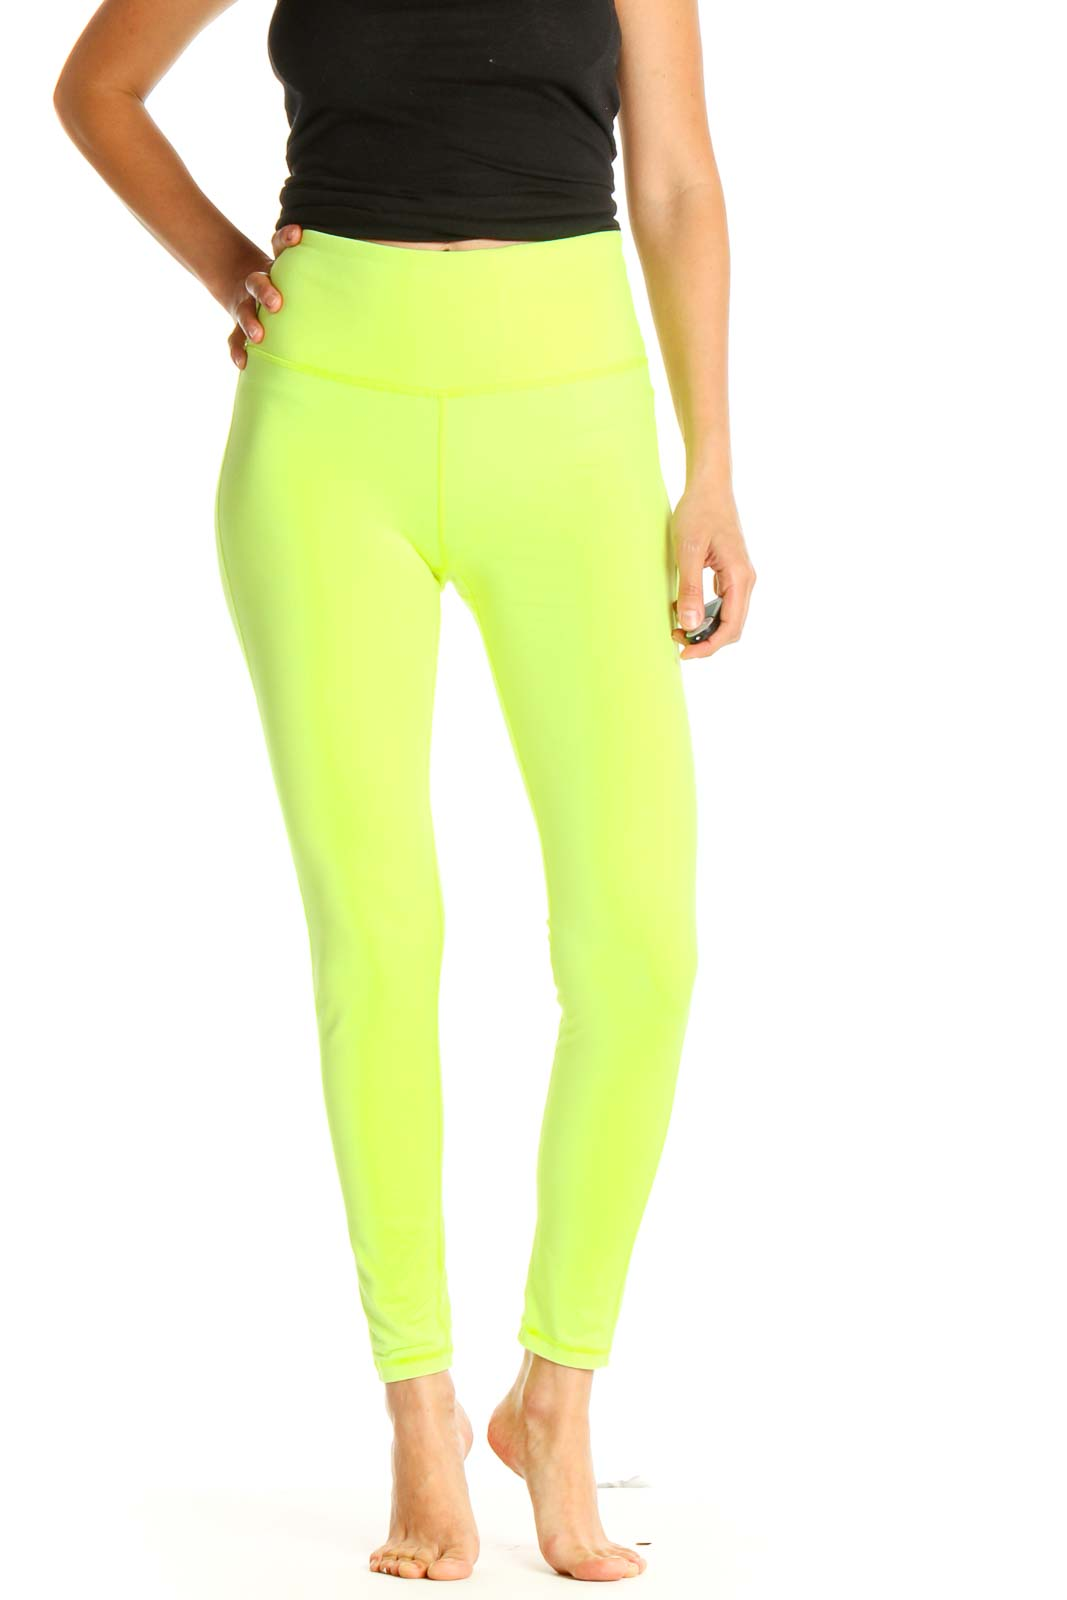 Green Solid Casual Leggings Front